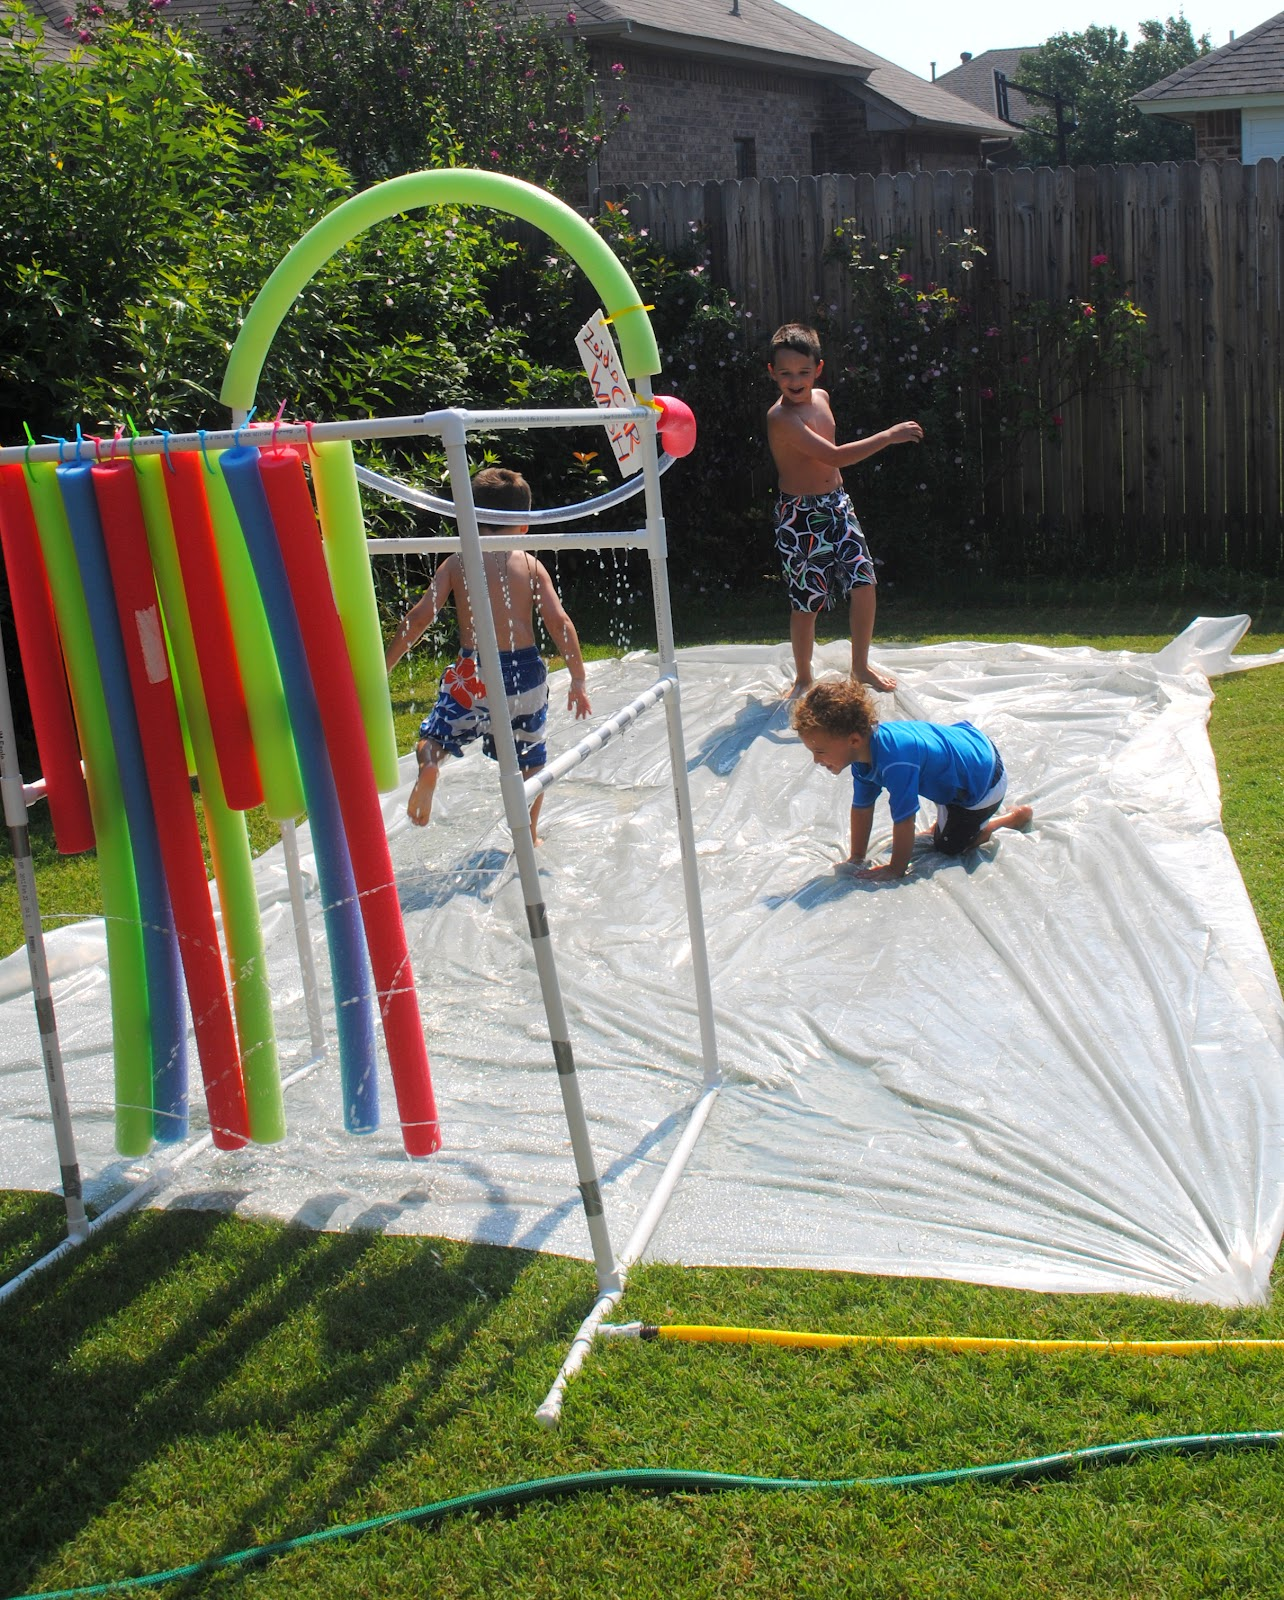 35 Fun Activities For Kids To Do This Summer